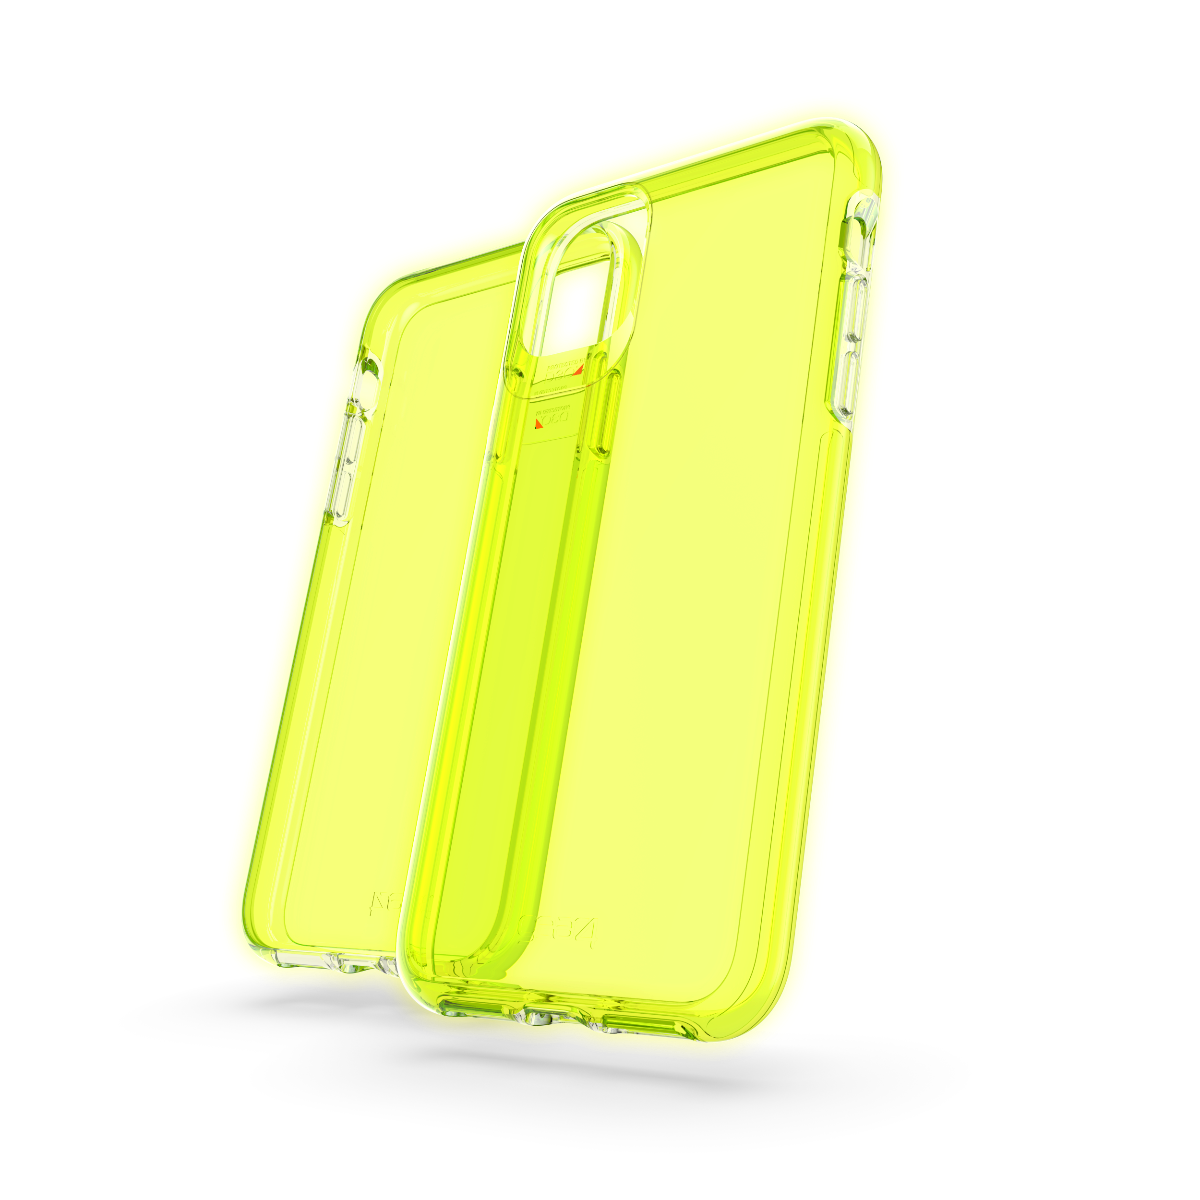 Crystal Palace iPhone 11 Pro Max (Neon Yellow)